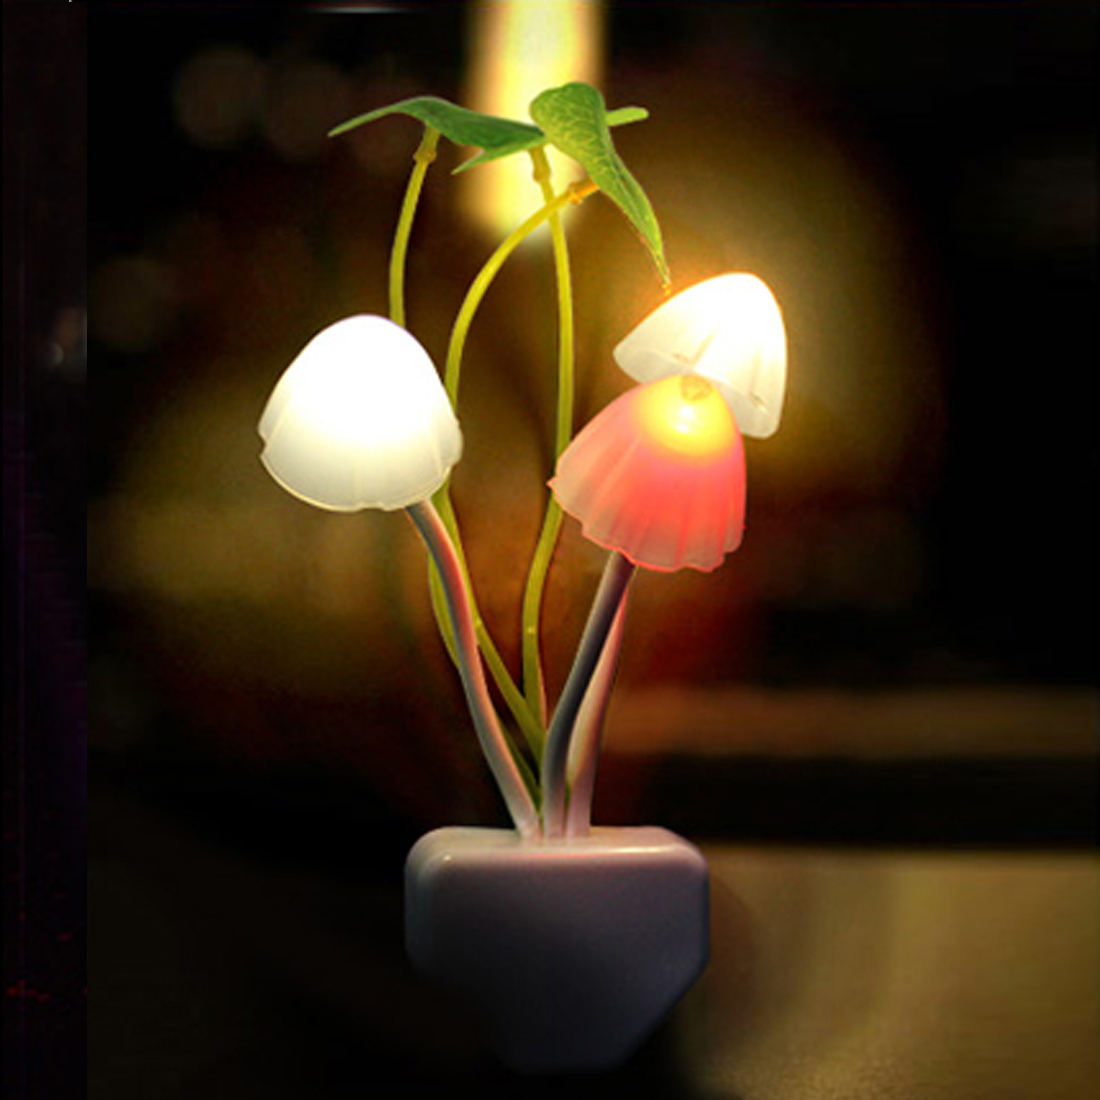 Novelty For Children Party Night Light EU & US Plug Light Sensor AC110V-220V 3 LED Colorful Mushroom Lamp Led Night Lights